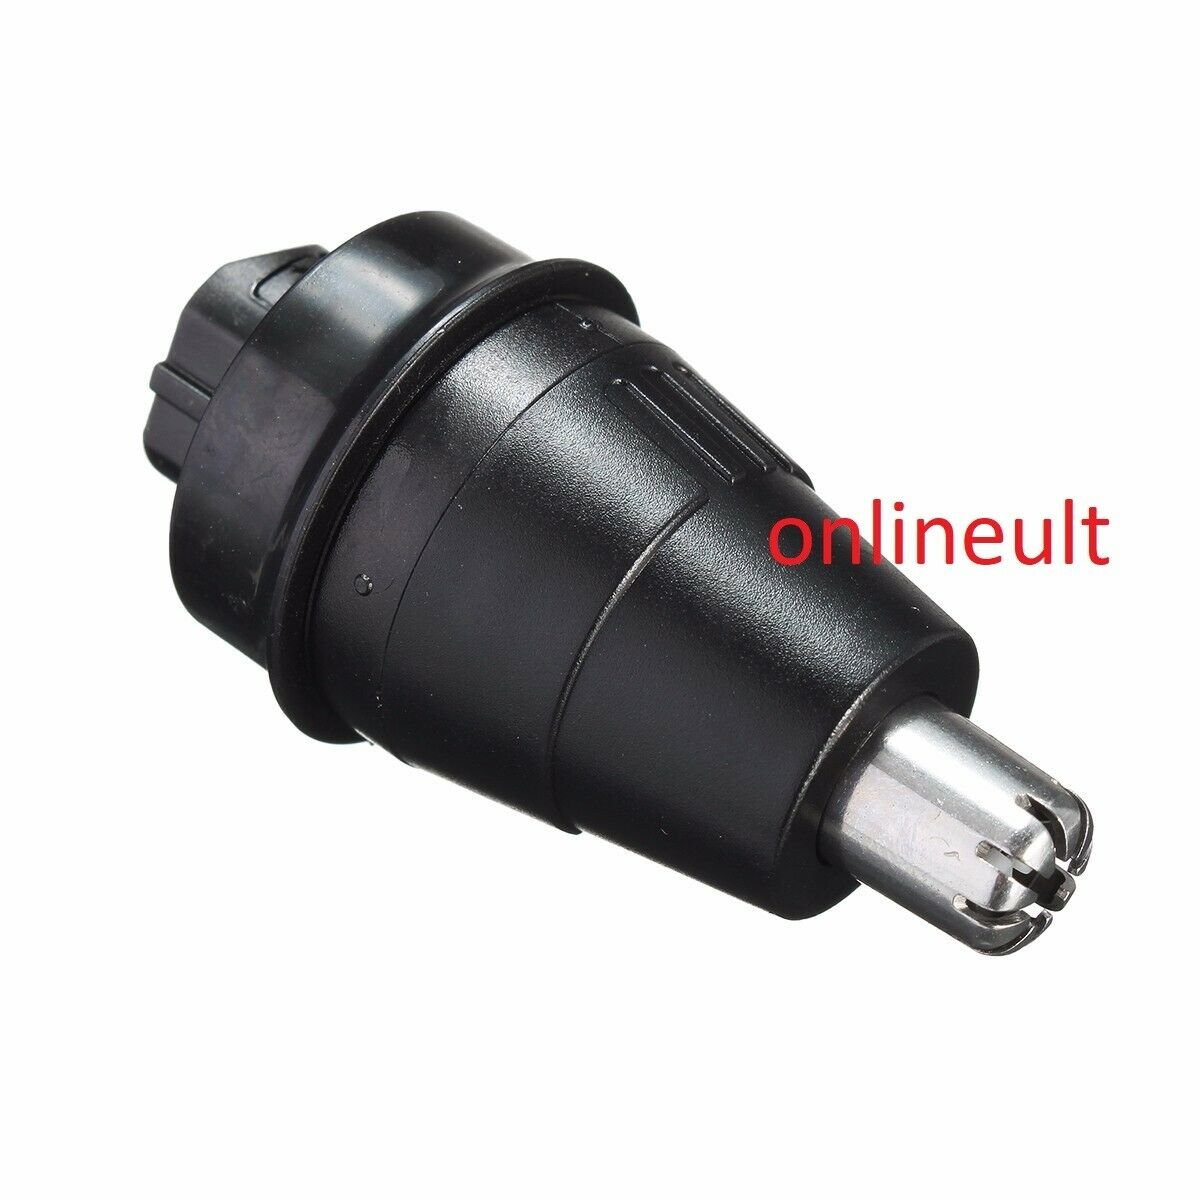 RQ Nose Trimmer Head For Philips Norelco 1250X 1255X 1260X 1280X 1290X RQ12 8000